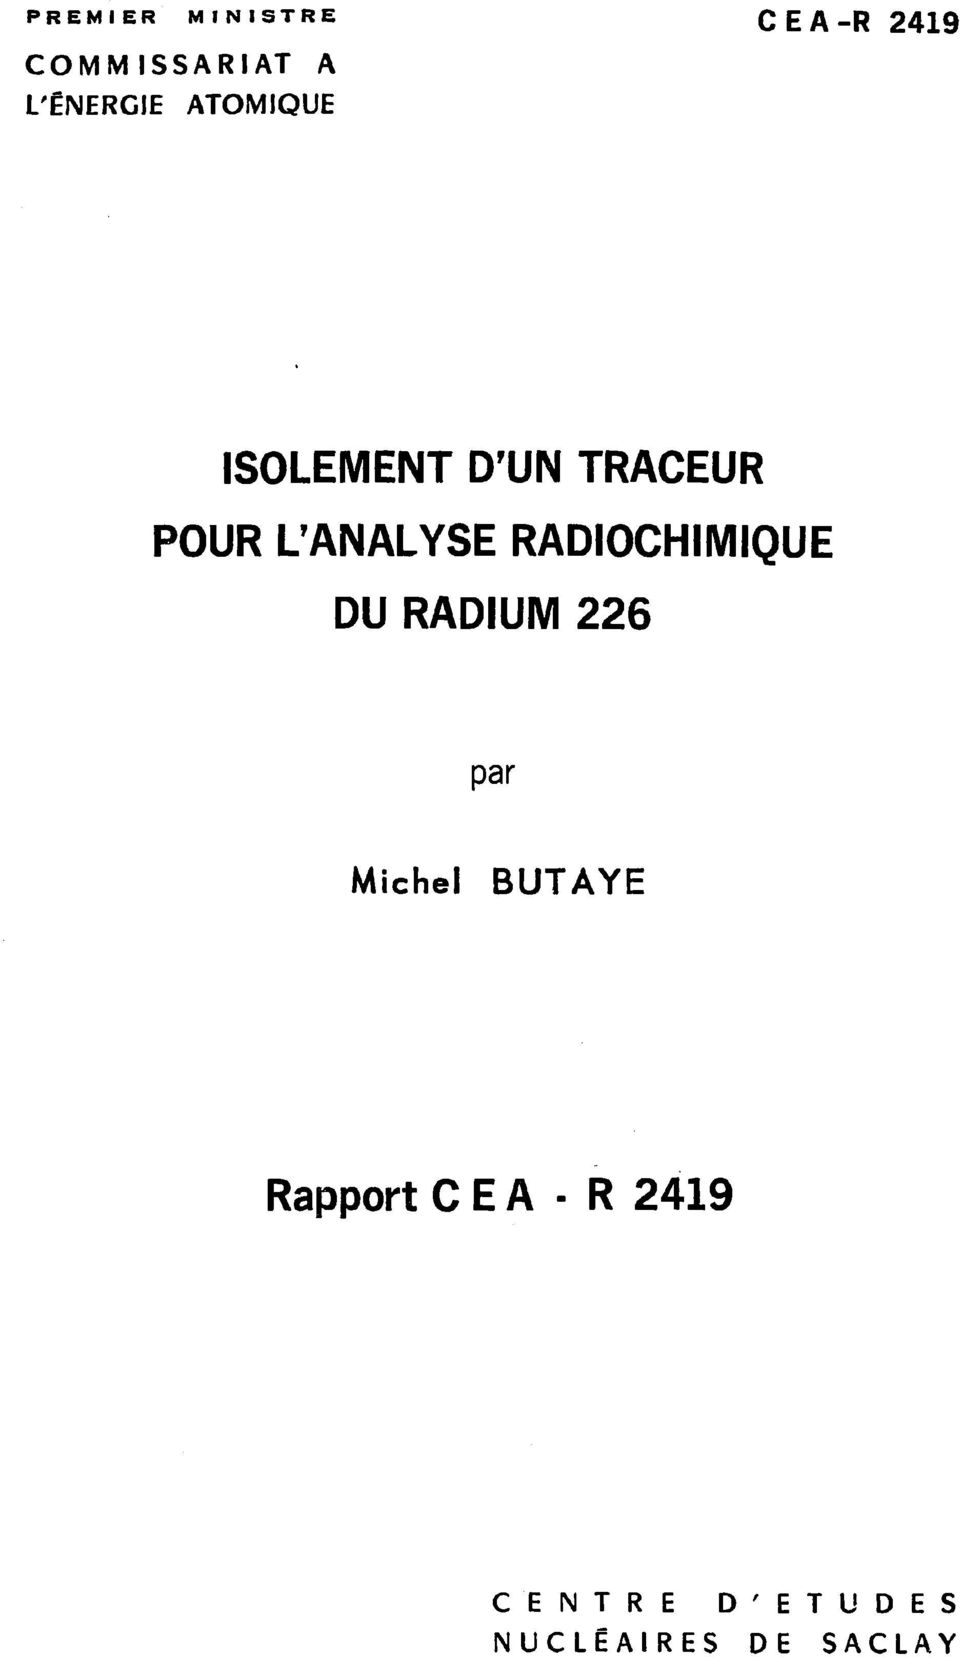 L'ANALYSE RADIOCHIMIQUE DU RADIUM 226 par Michel